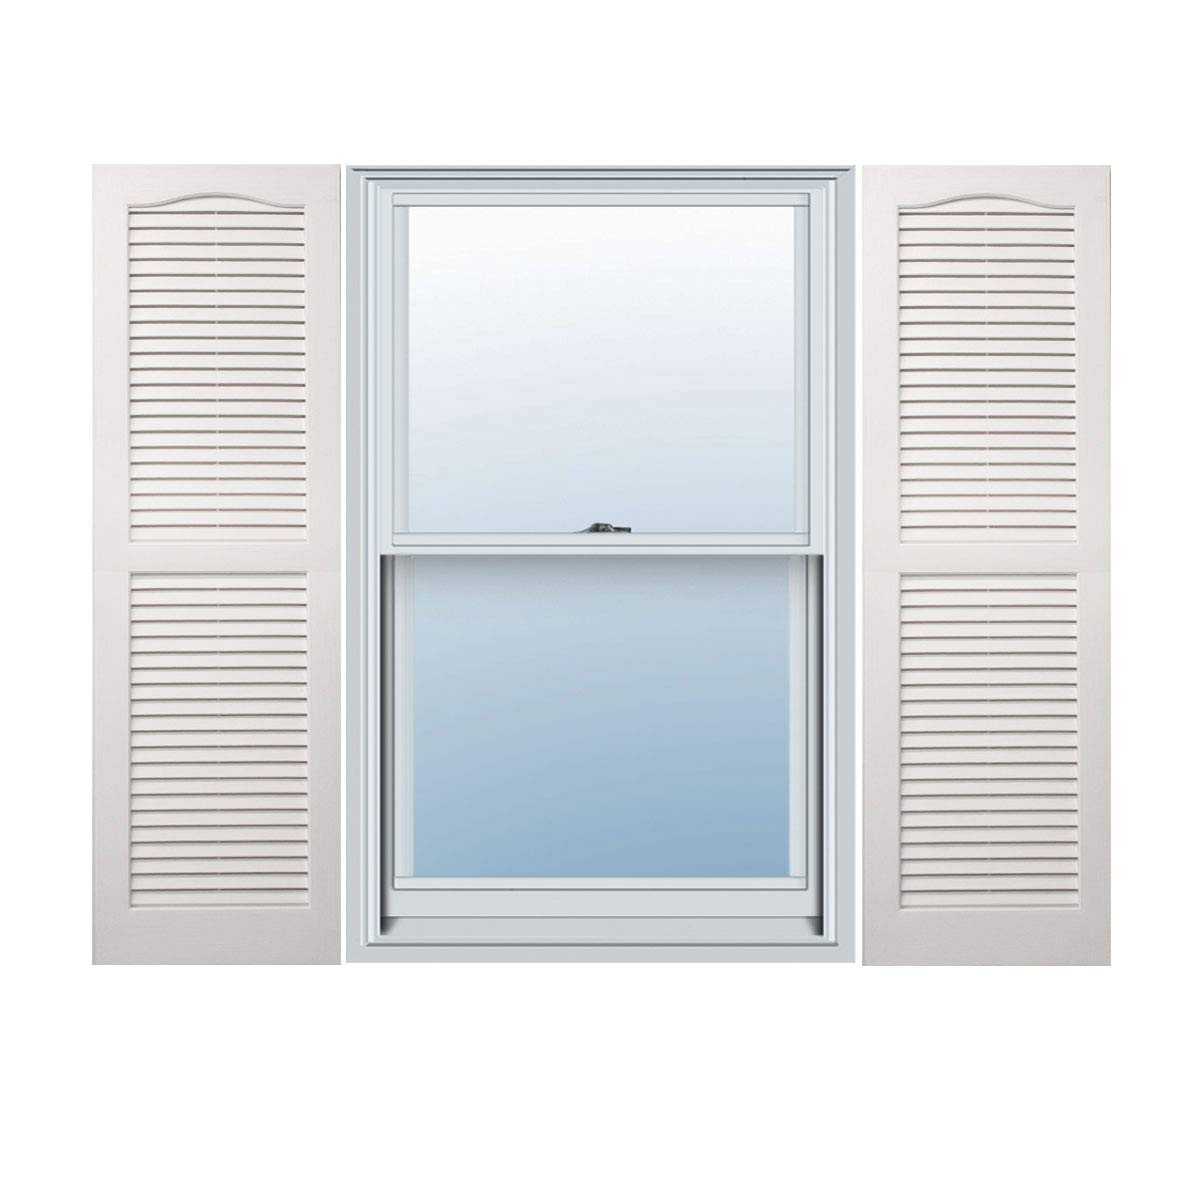 Alpha VNB1547WHOL Open Louver, 2 Pack, 14'' x 47'', White by Alpha